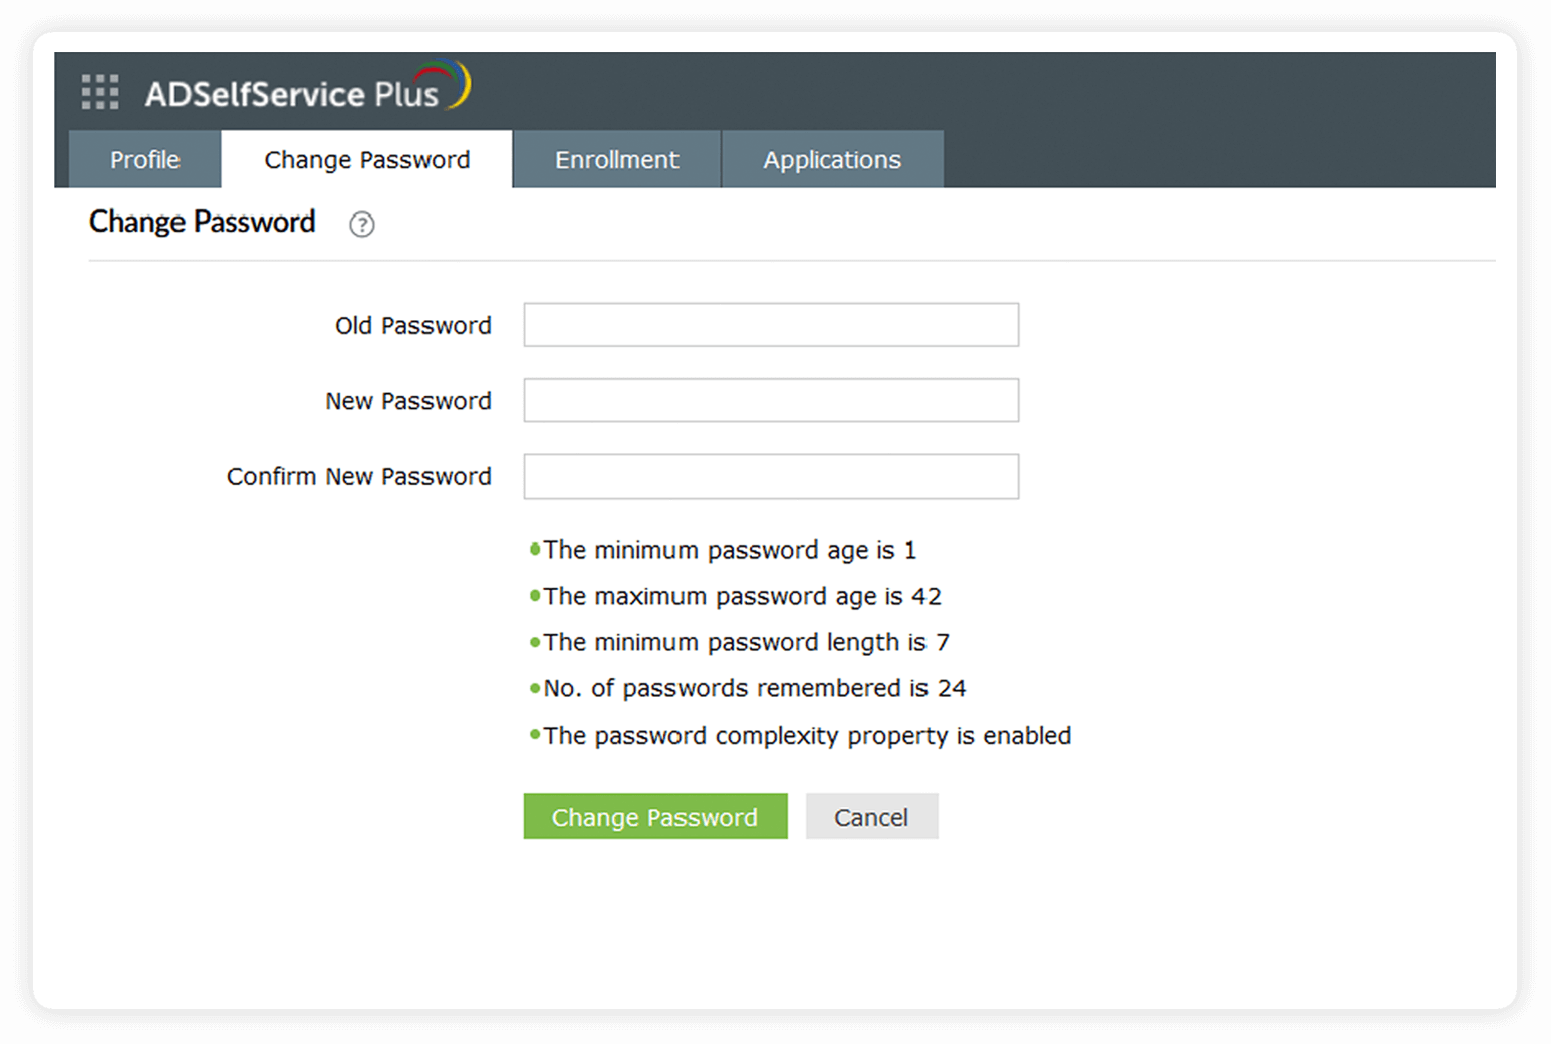 adselfservice-plus-change-password-screen